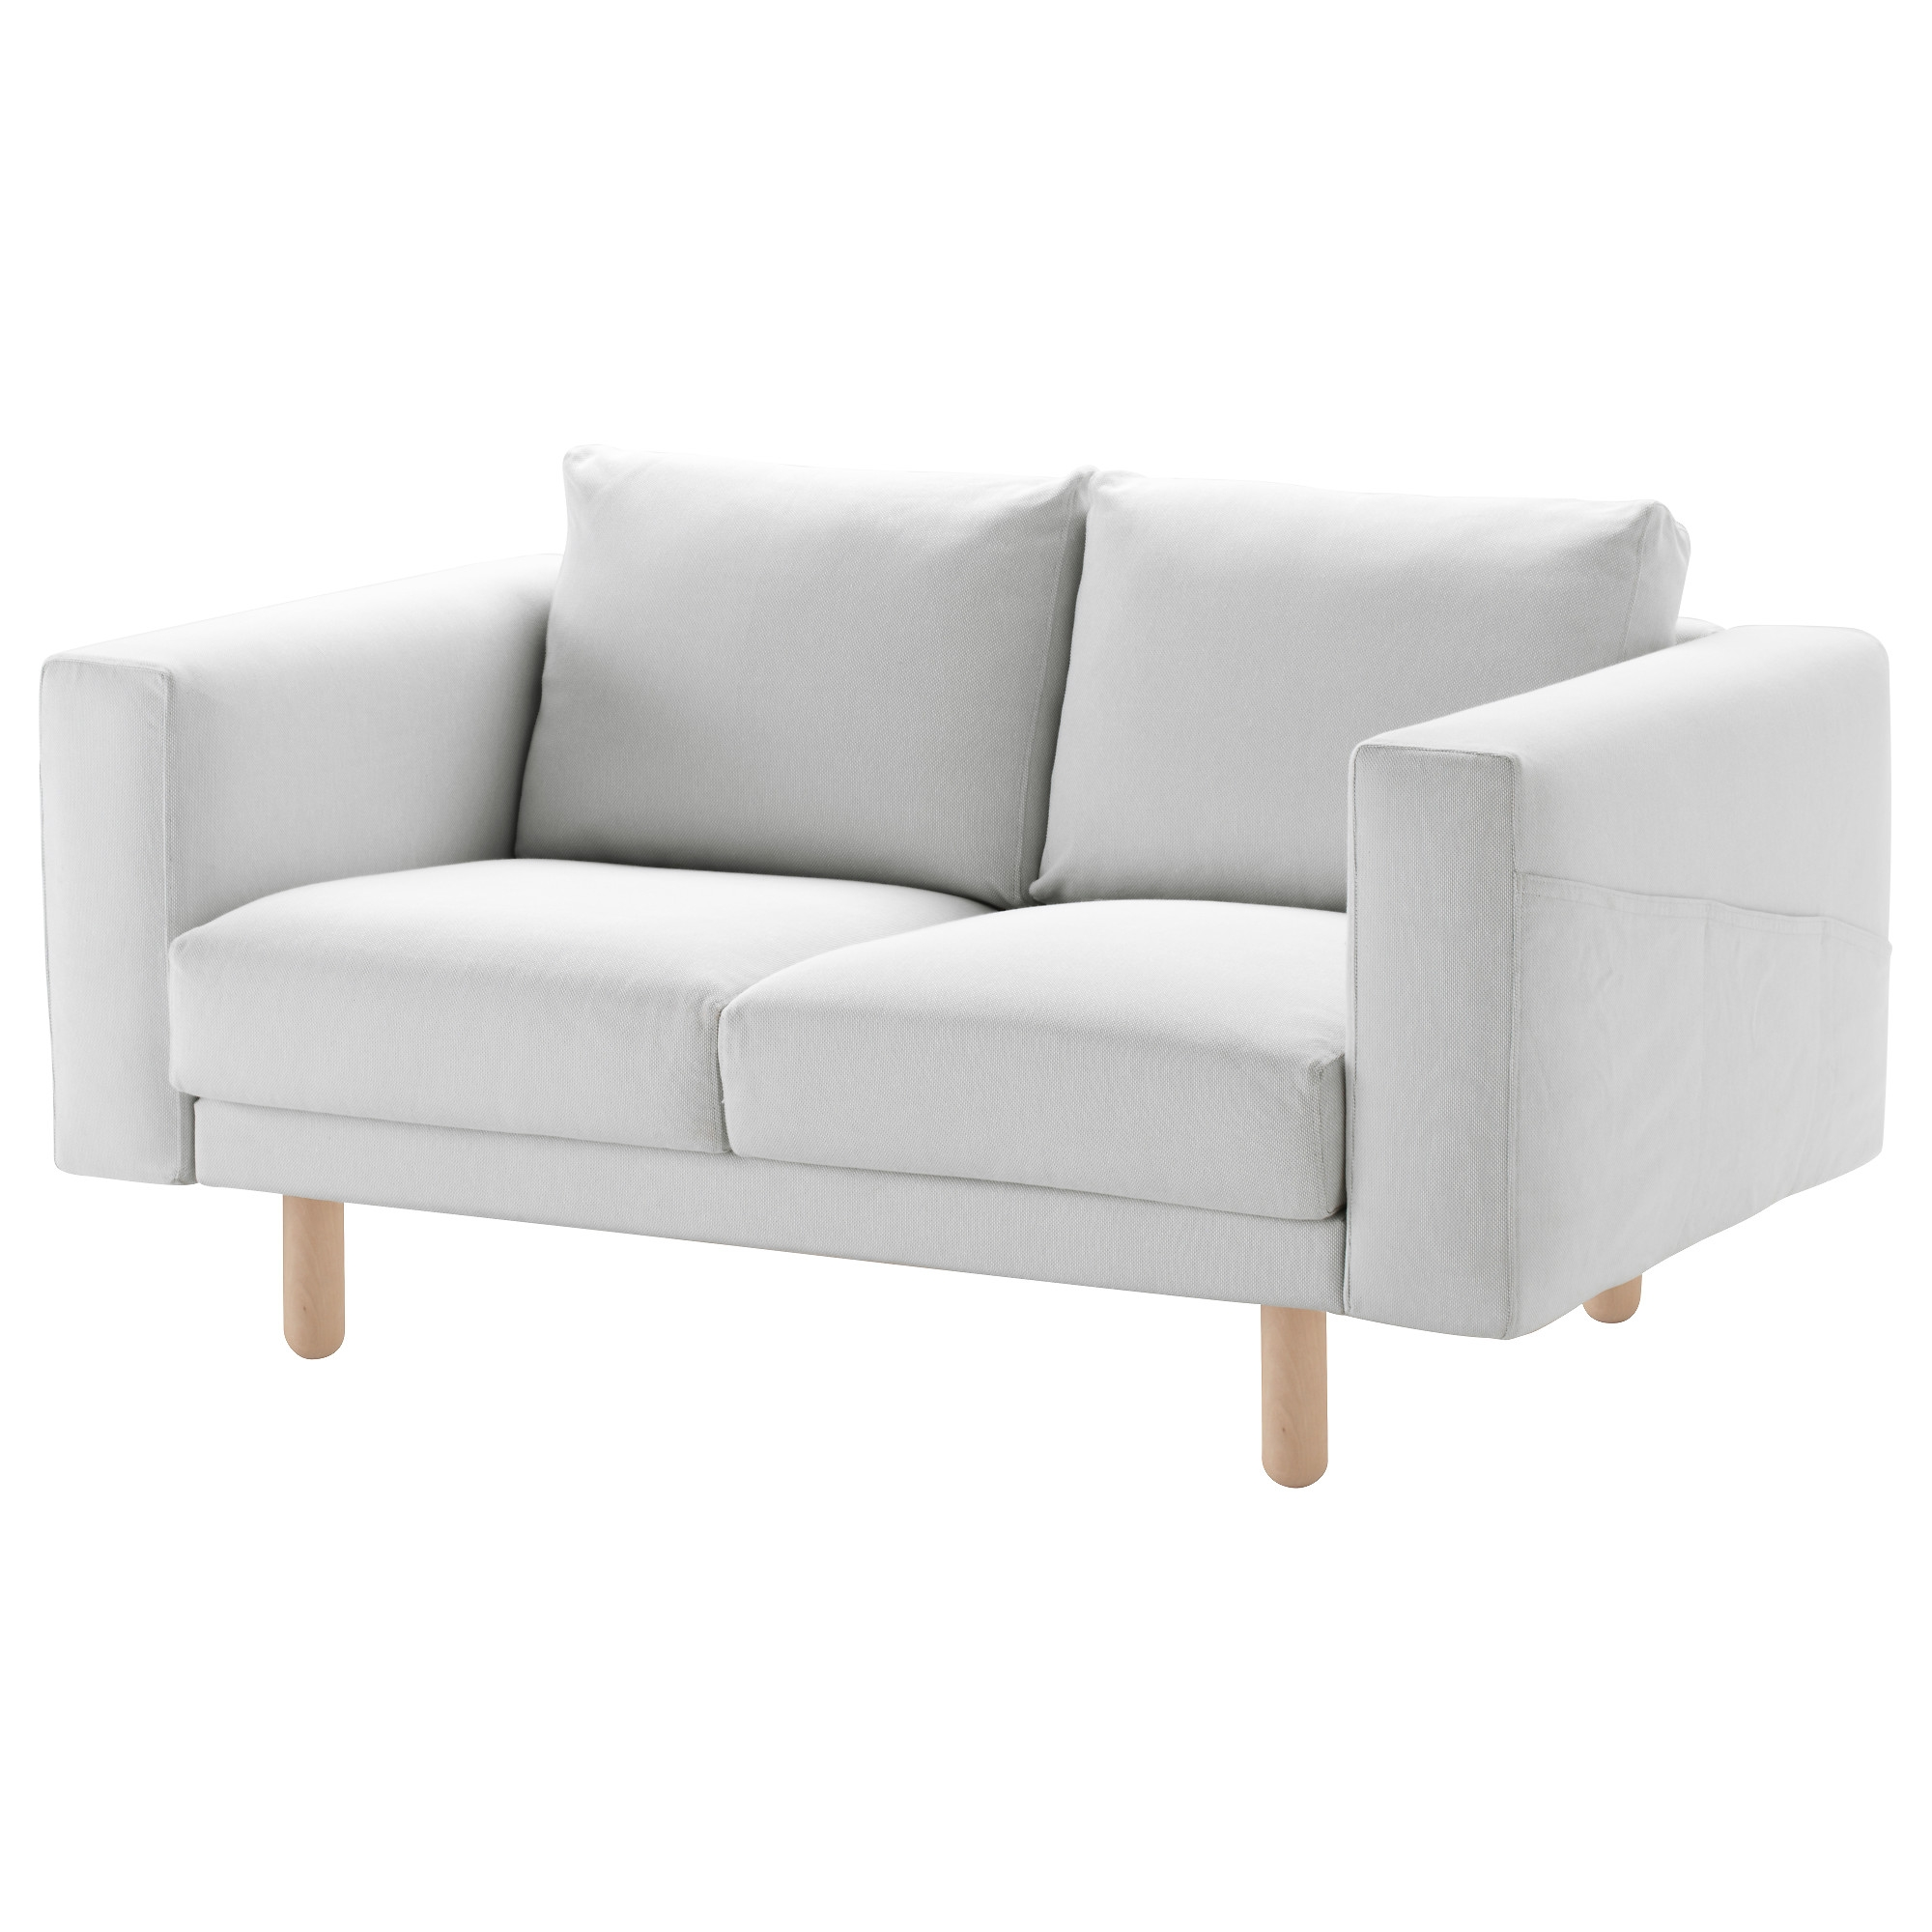 Fancy White Sofa Chair 32 About Remodel Sofa Room Ideas With White Regarding White Sofa Chairs (Image 6 of 15)